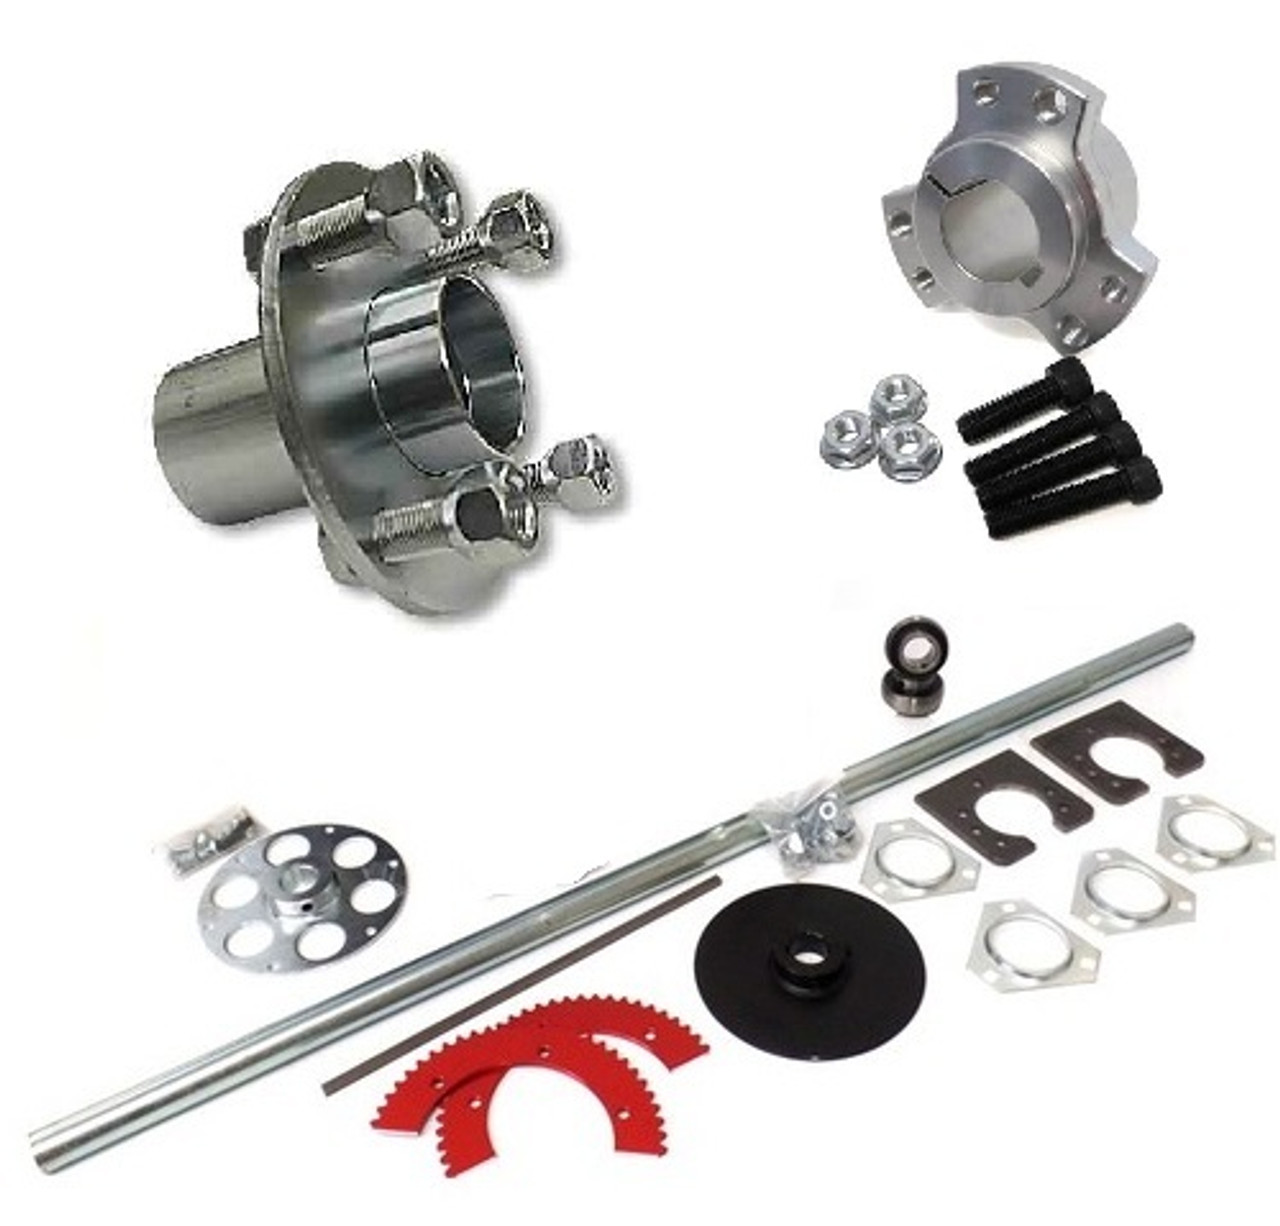 Axles and Hubs for Go-Karts, Drift Trikes, Mini Bikes and More